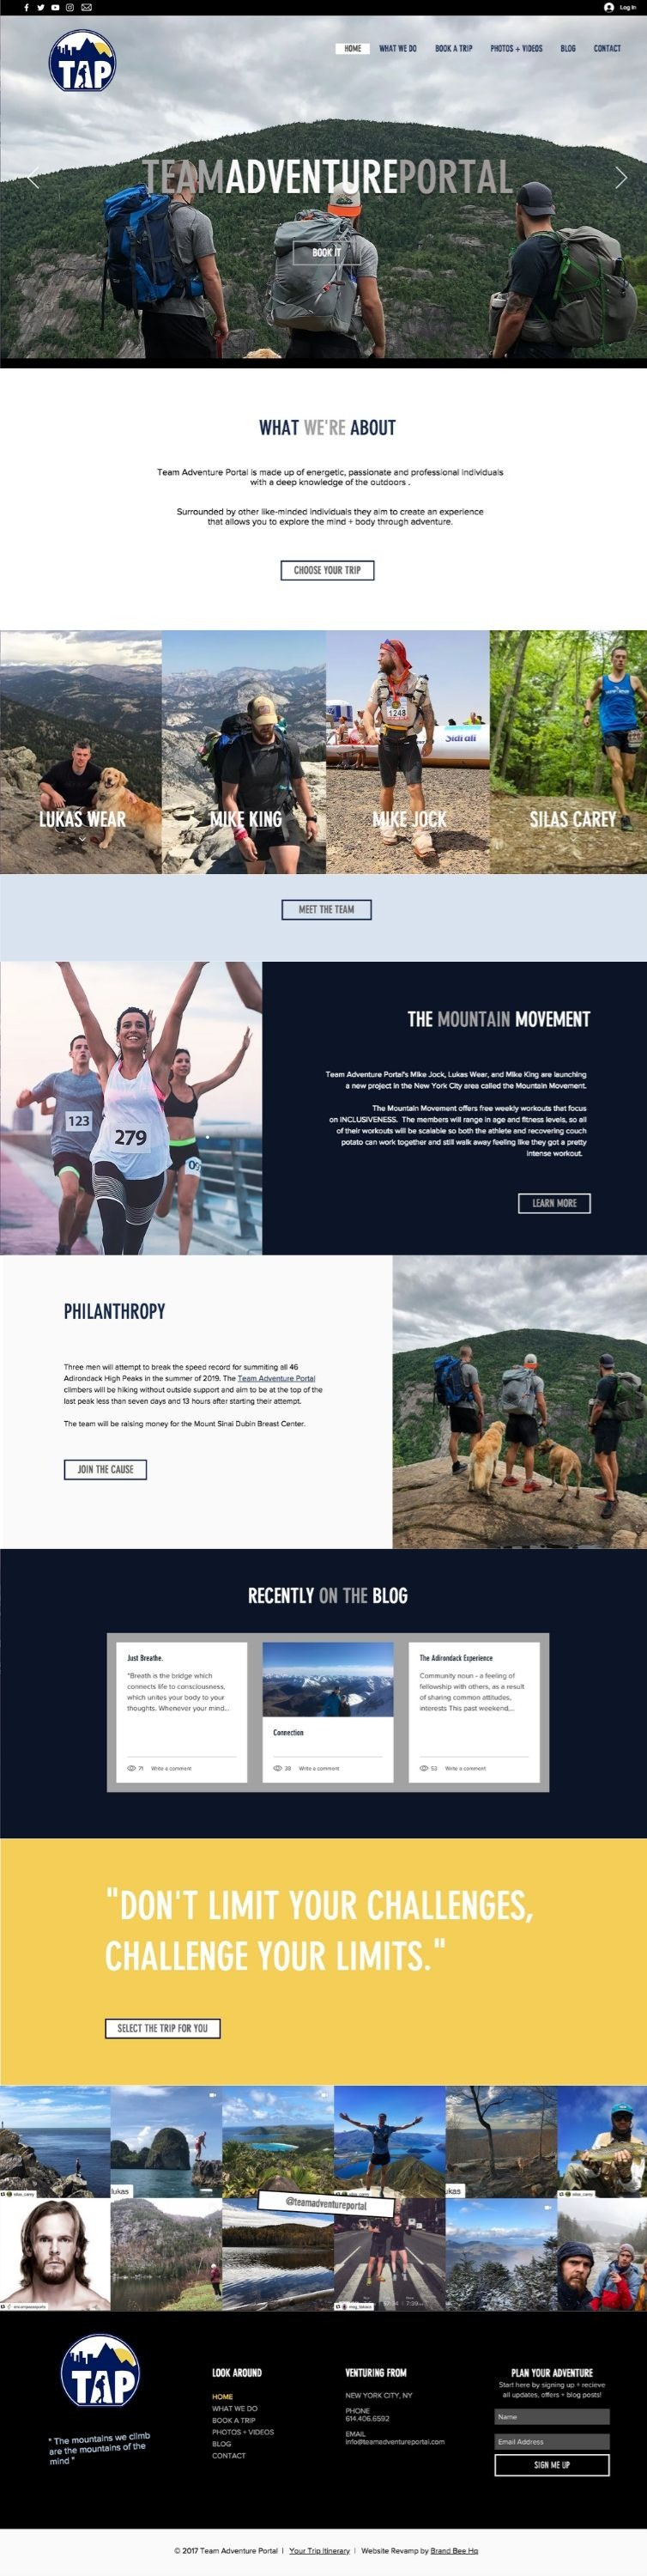 Wix website design for TAP and Team Adventure Portal by Bridgette Karl of forty-ninth street, websites for actors